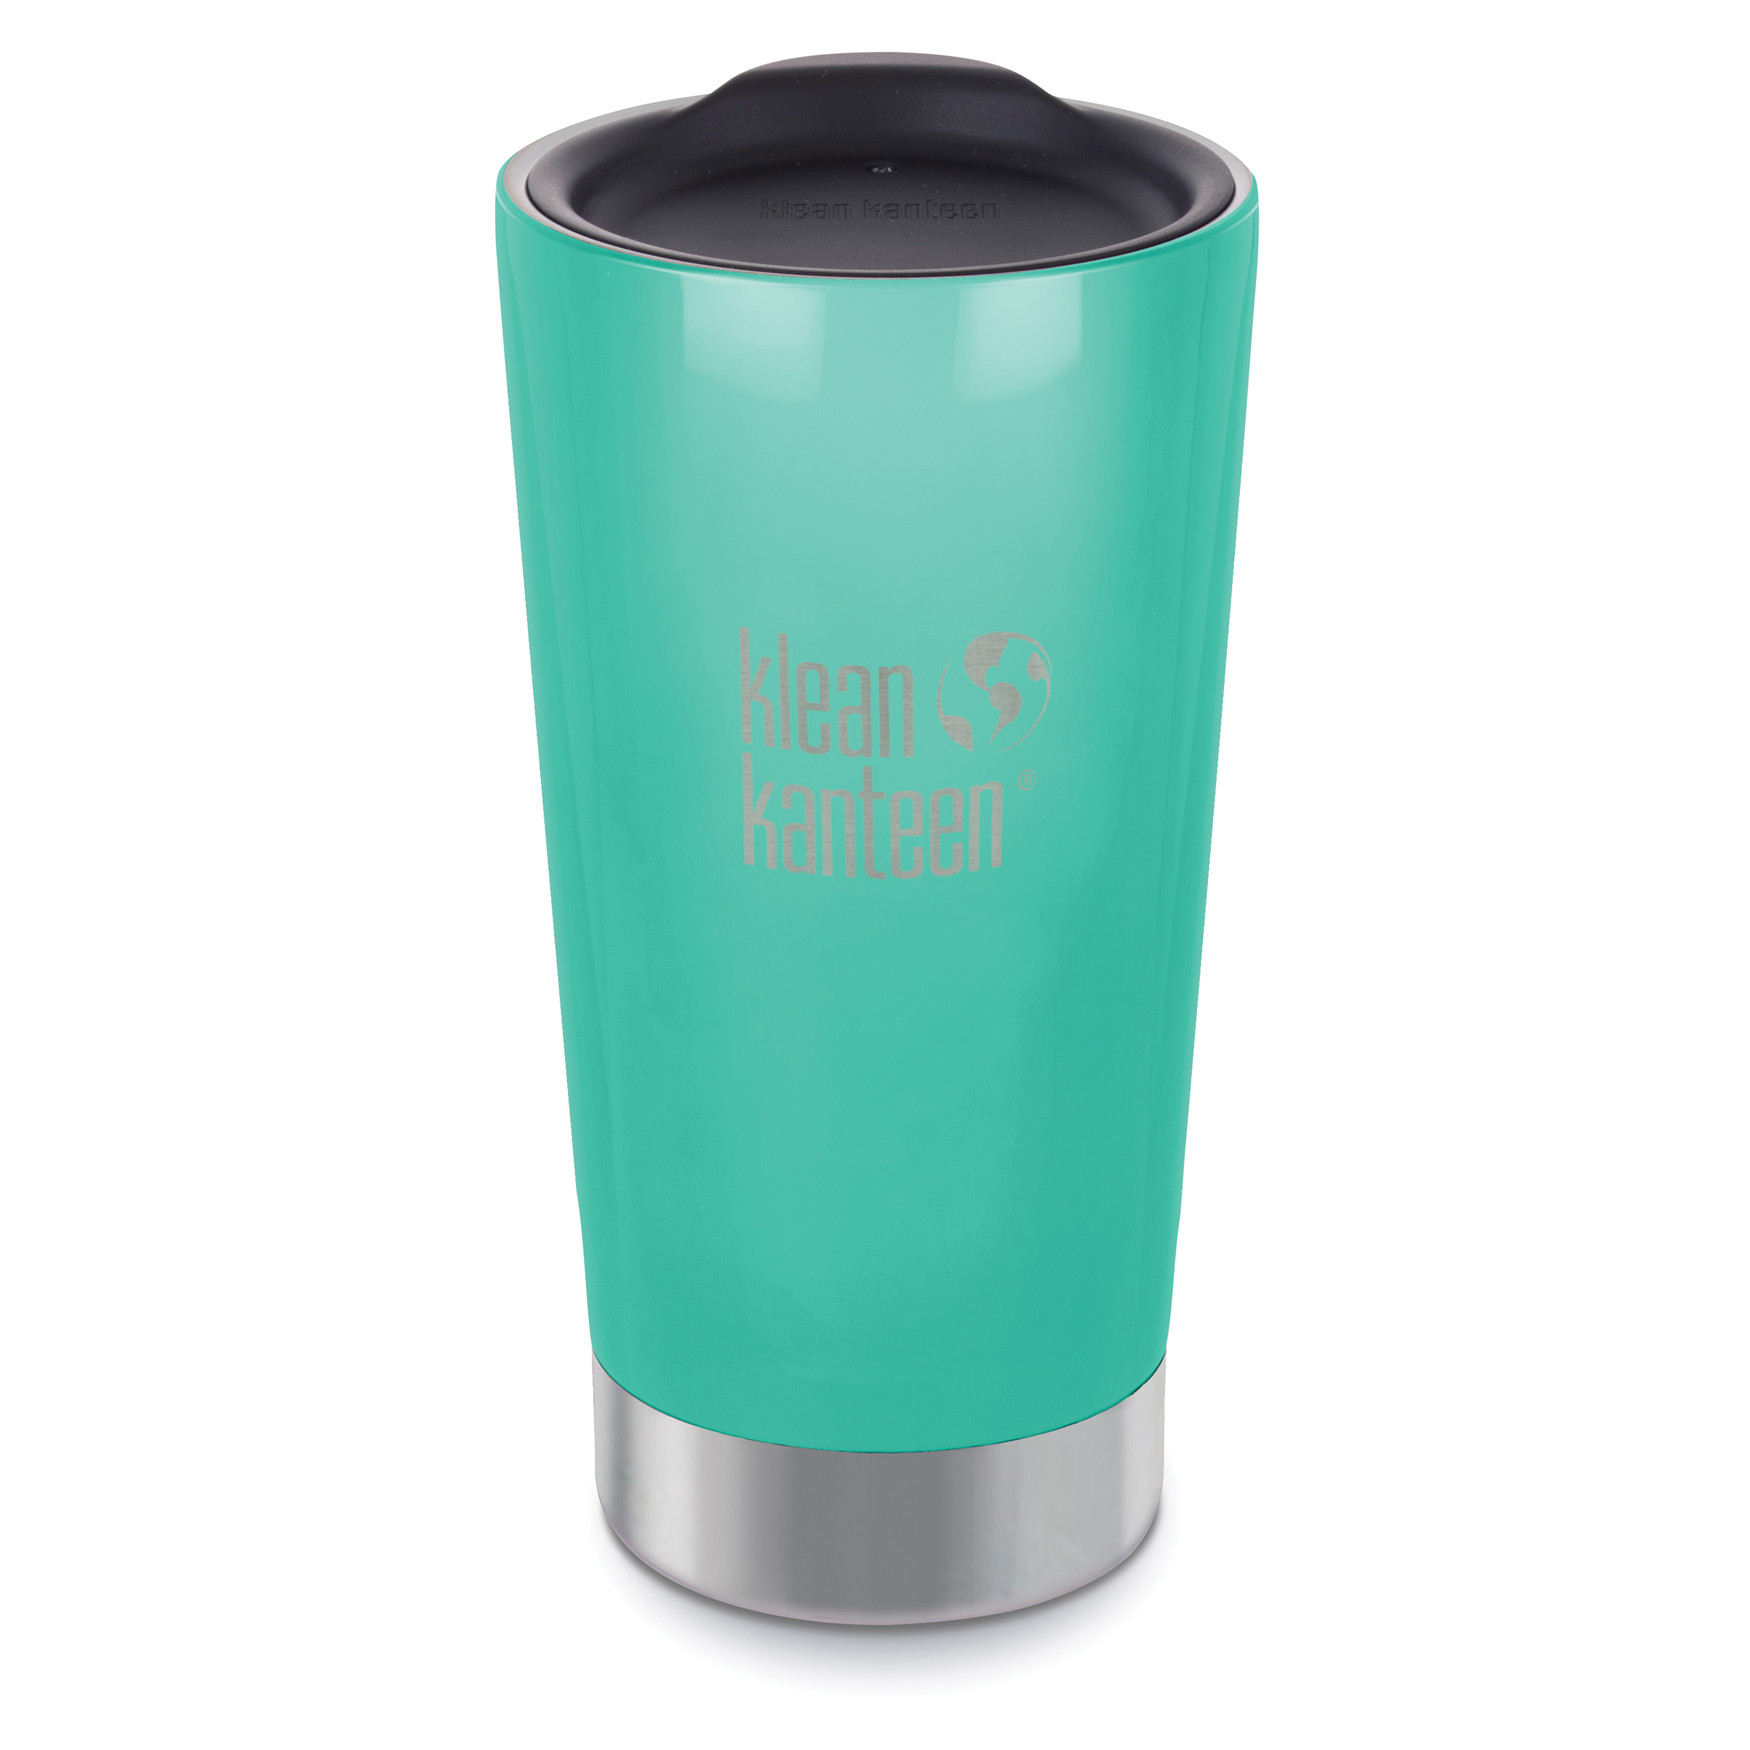 Klean Kanteen 16oz Vacuum Insulated Pint Tumbler Stainless